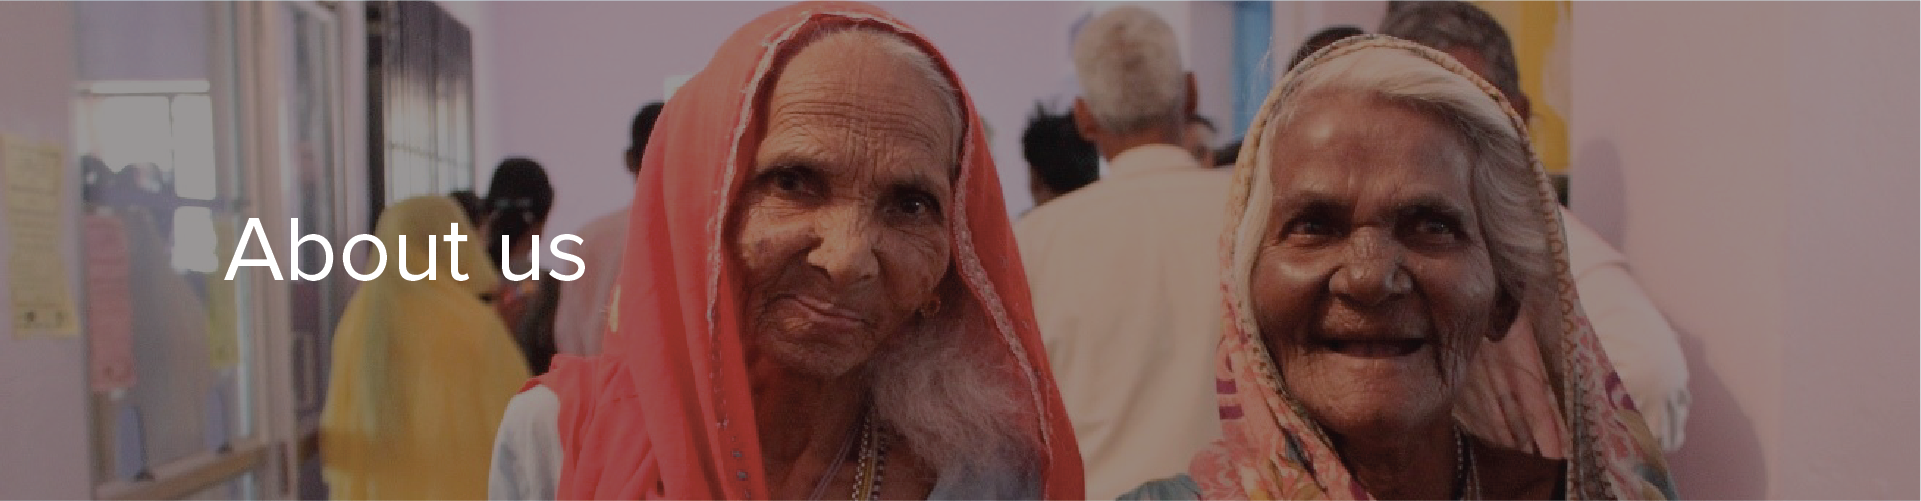 About Us Banner - Reimagining India's Health System - The Lancet Citizens' Commission